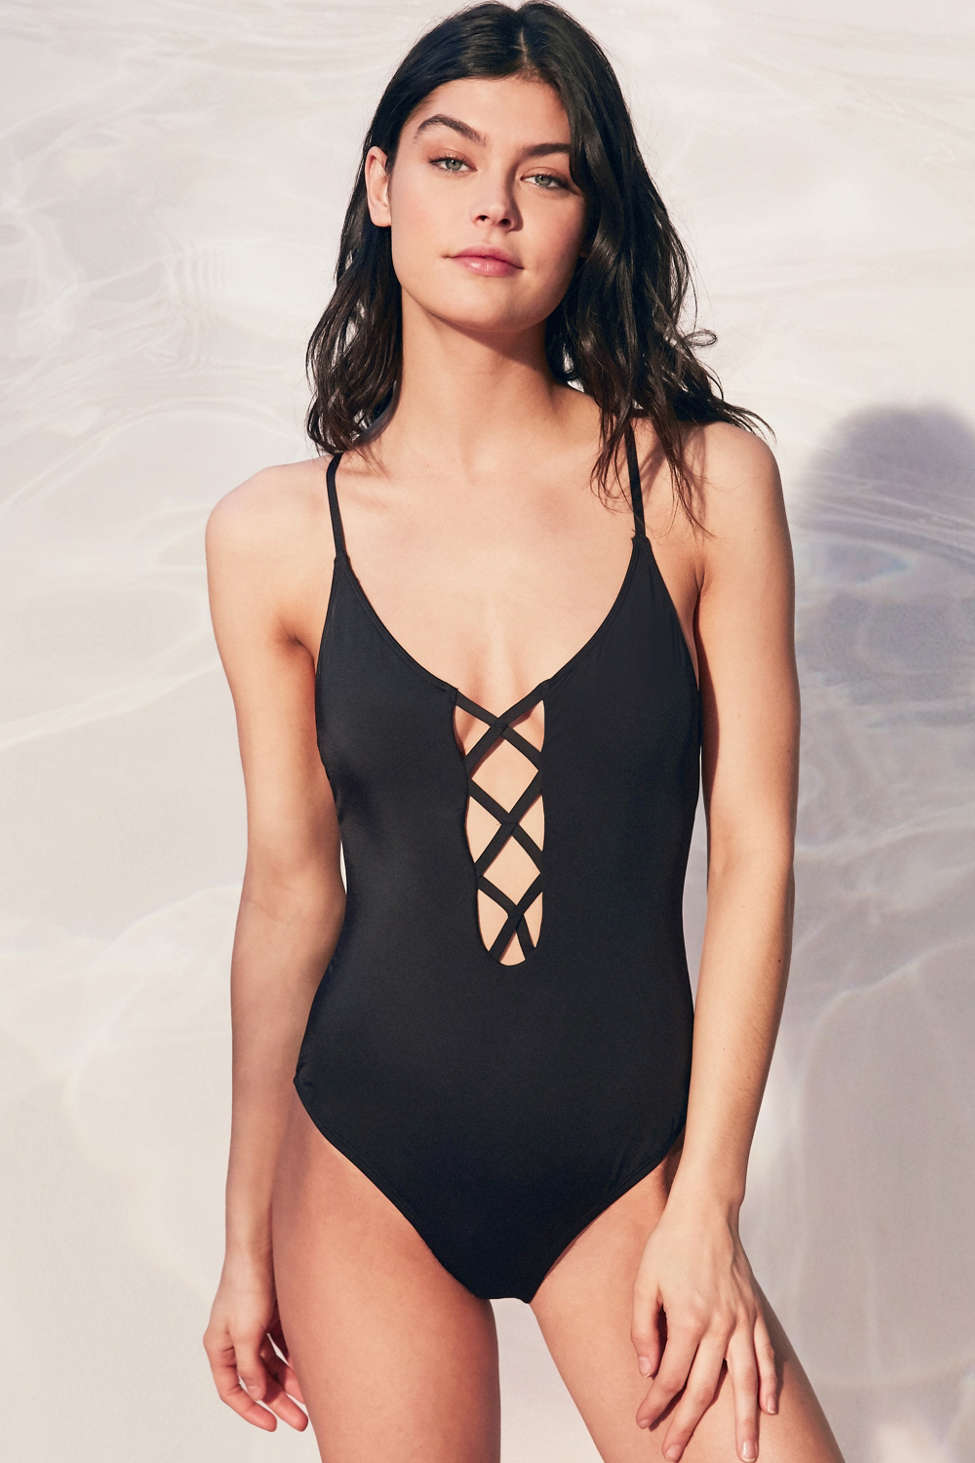 http://www.urbanoutfitters.com/ca/en/catalog/productdetail.jsp?id=38636387&category=W_APP_SWIMWEAR_ONE